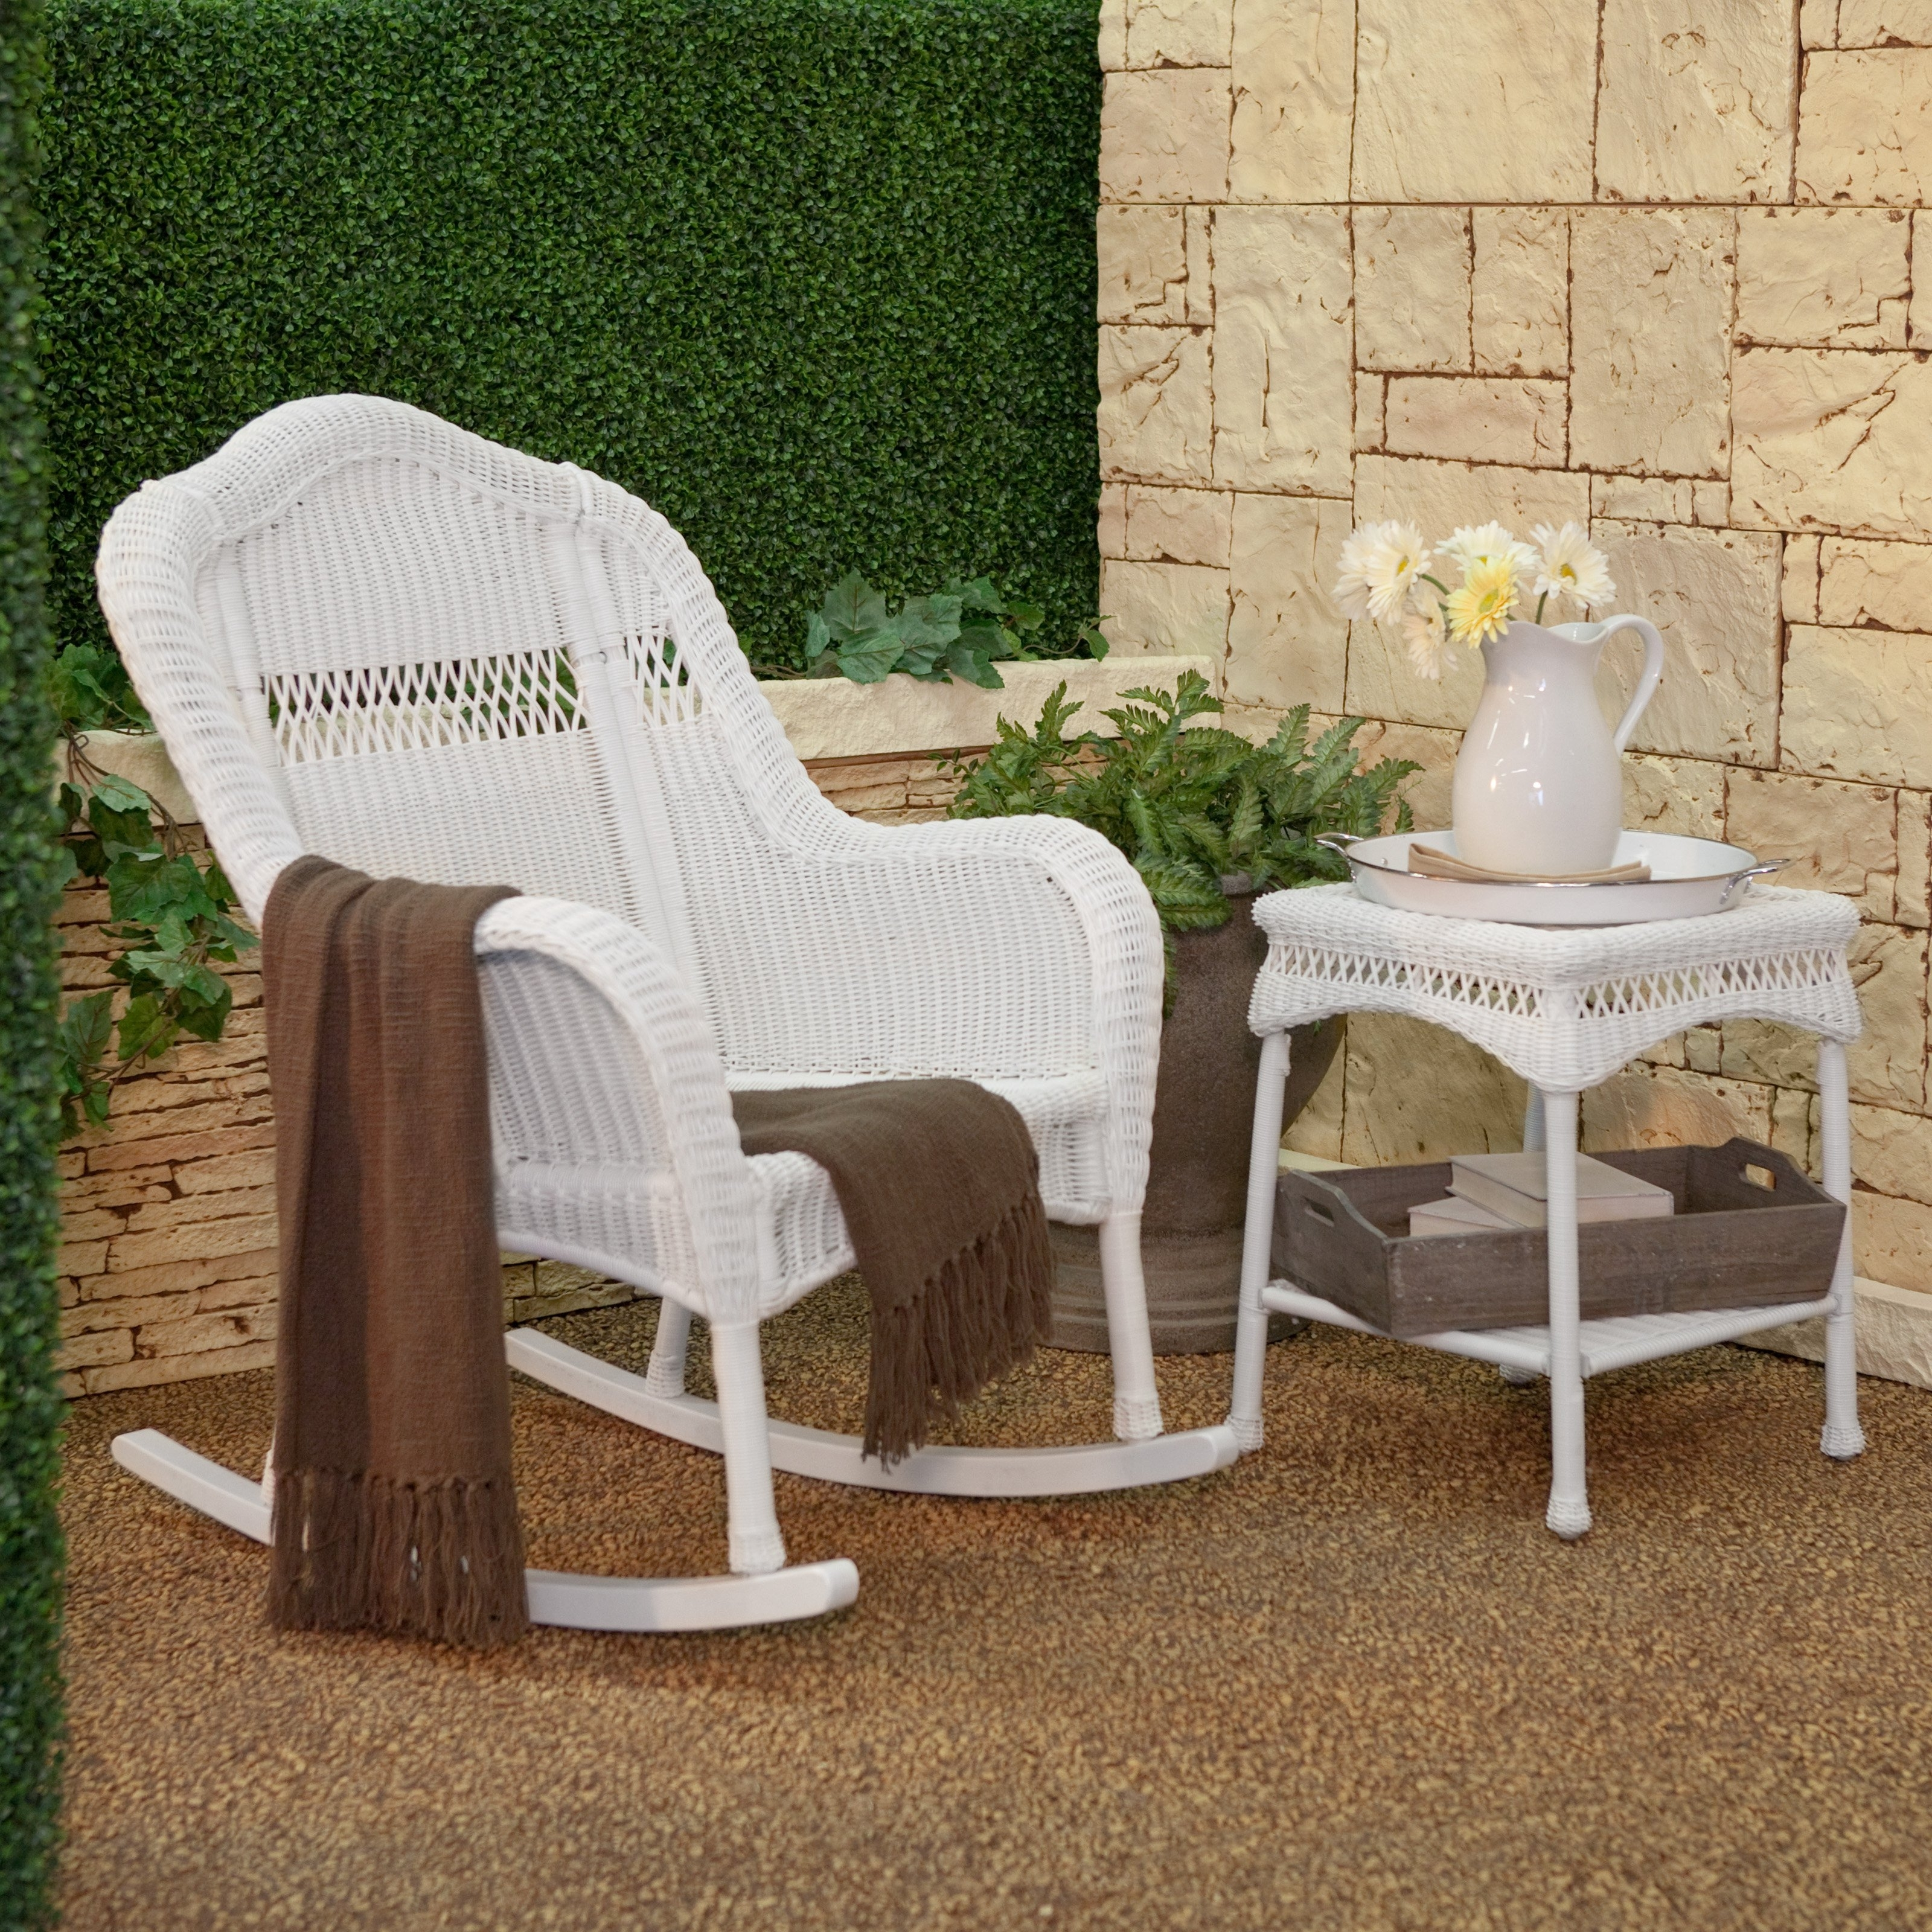 White Wicker Rocking Chairs Pertaining To Latest Coral Coast Casco Bay Resin Wicker Rocking Chair With Cushion Option (View 12 of 15)